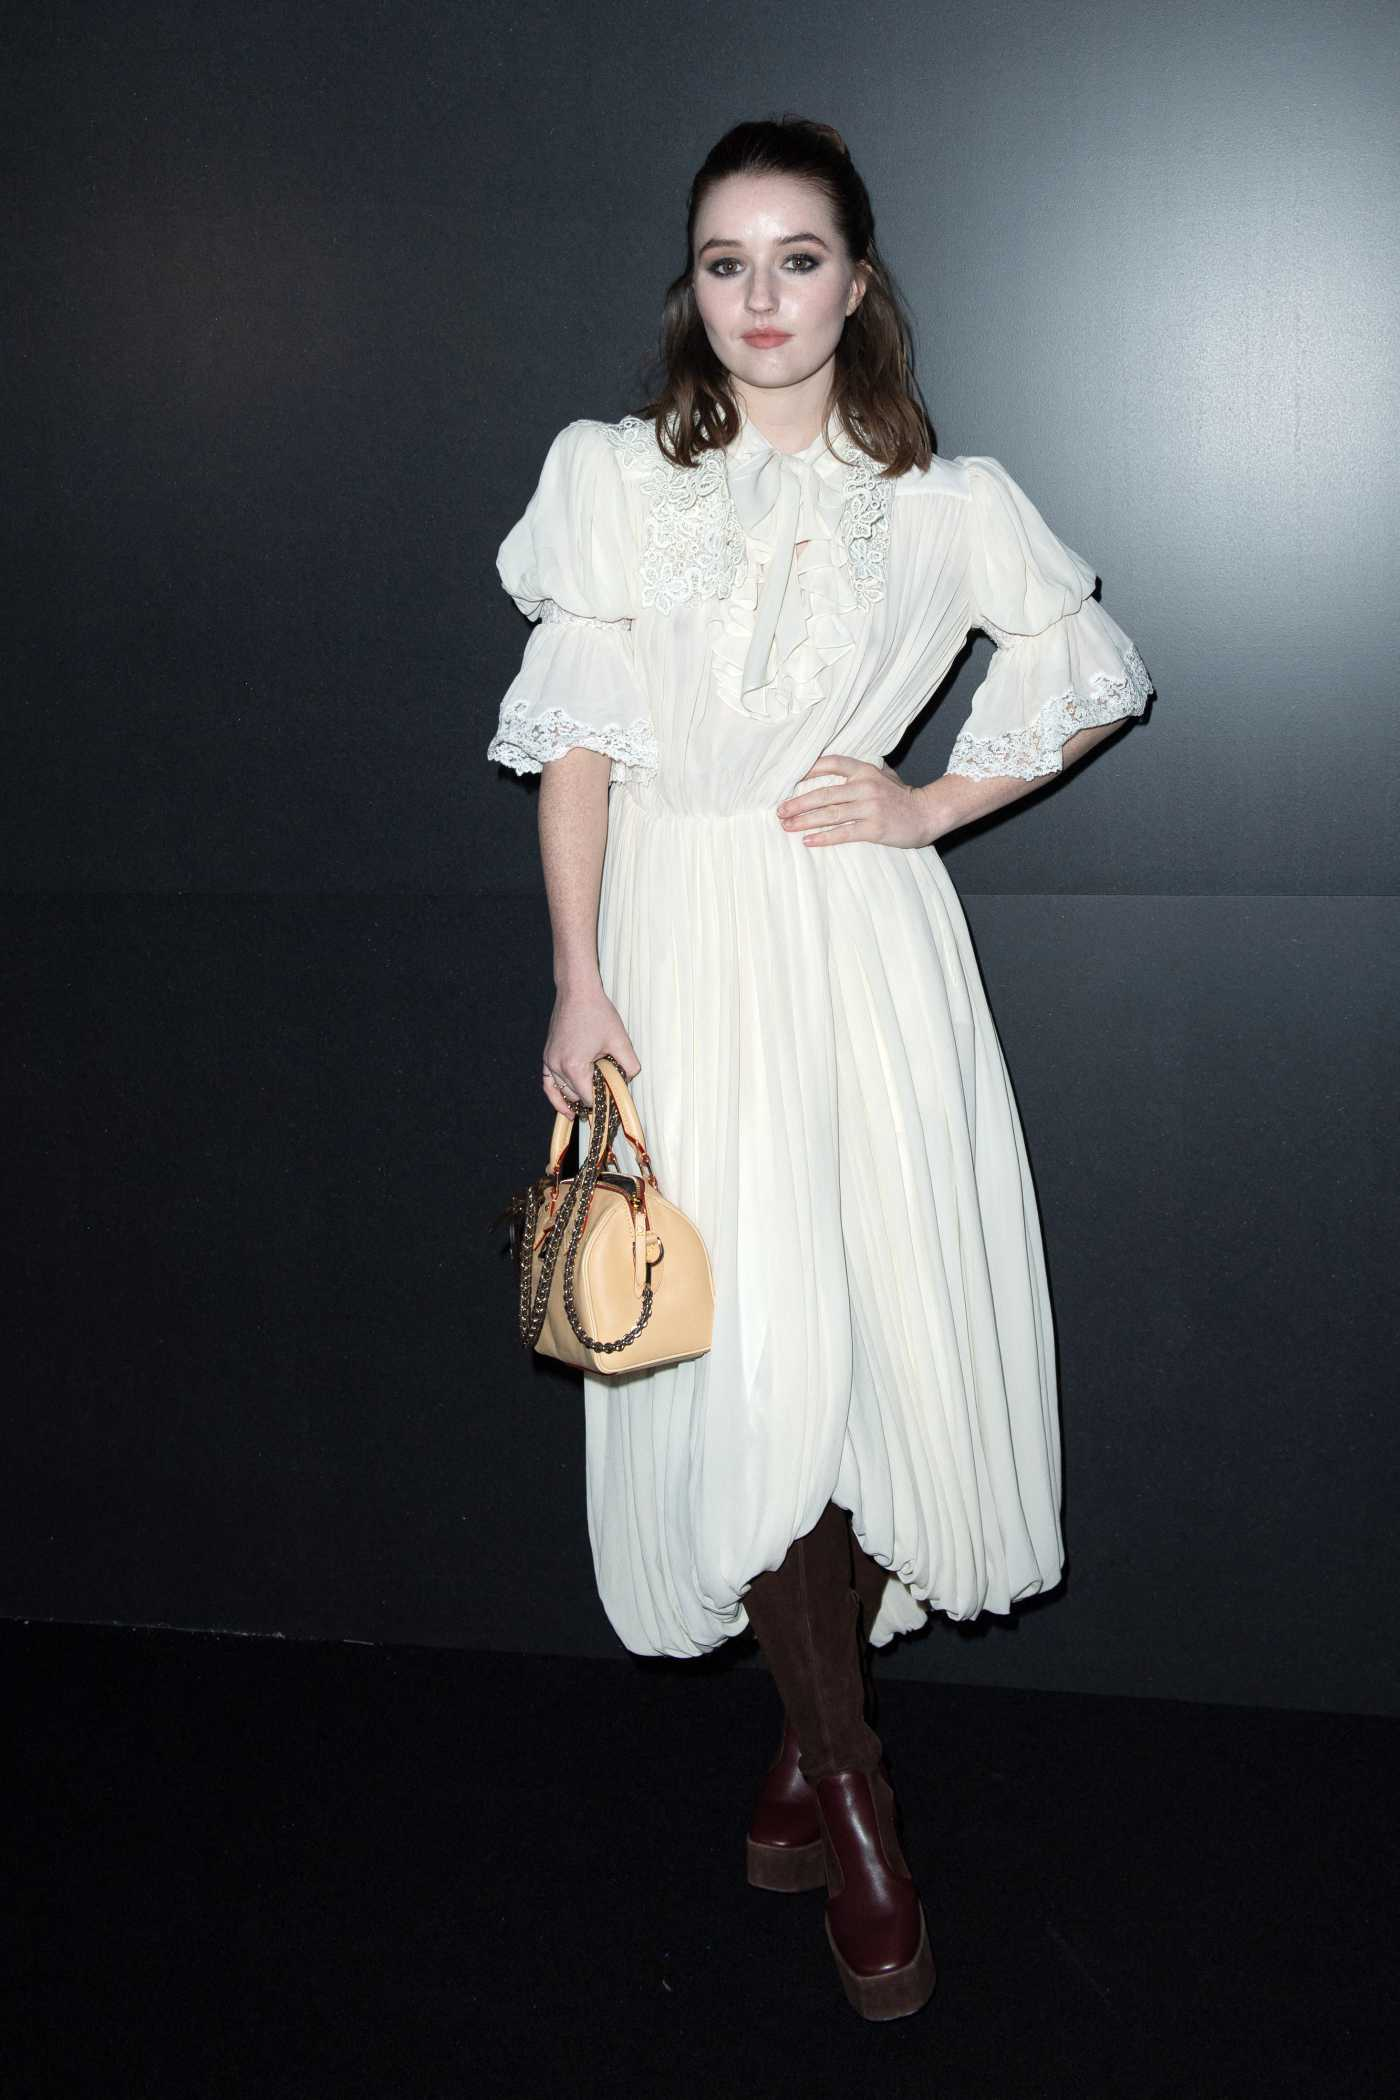 Kaitlyn Dever Attends 2020 Louis Vuitton Fashion Show in Paris 03/03/2020